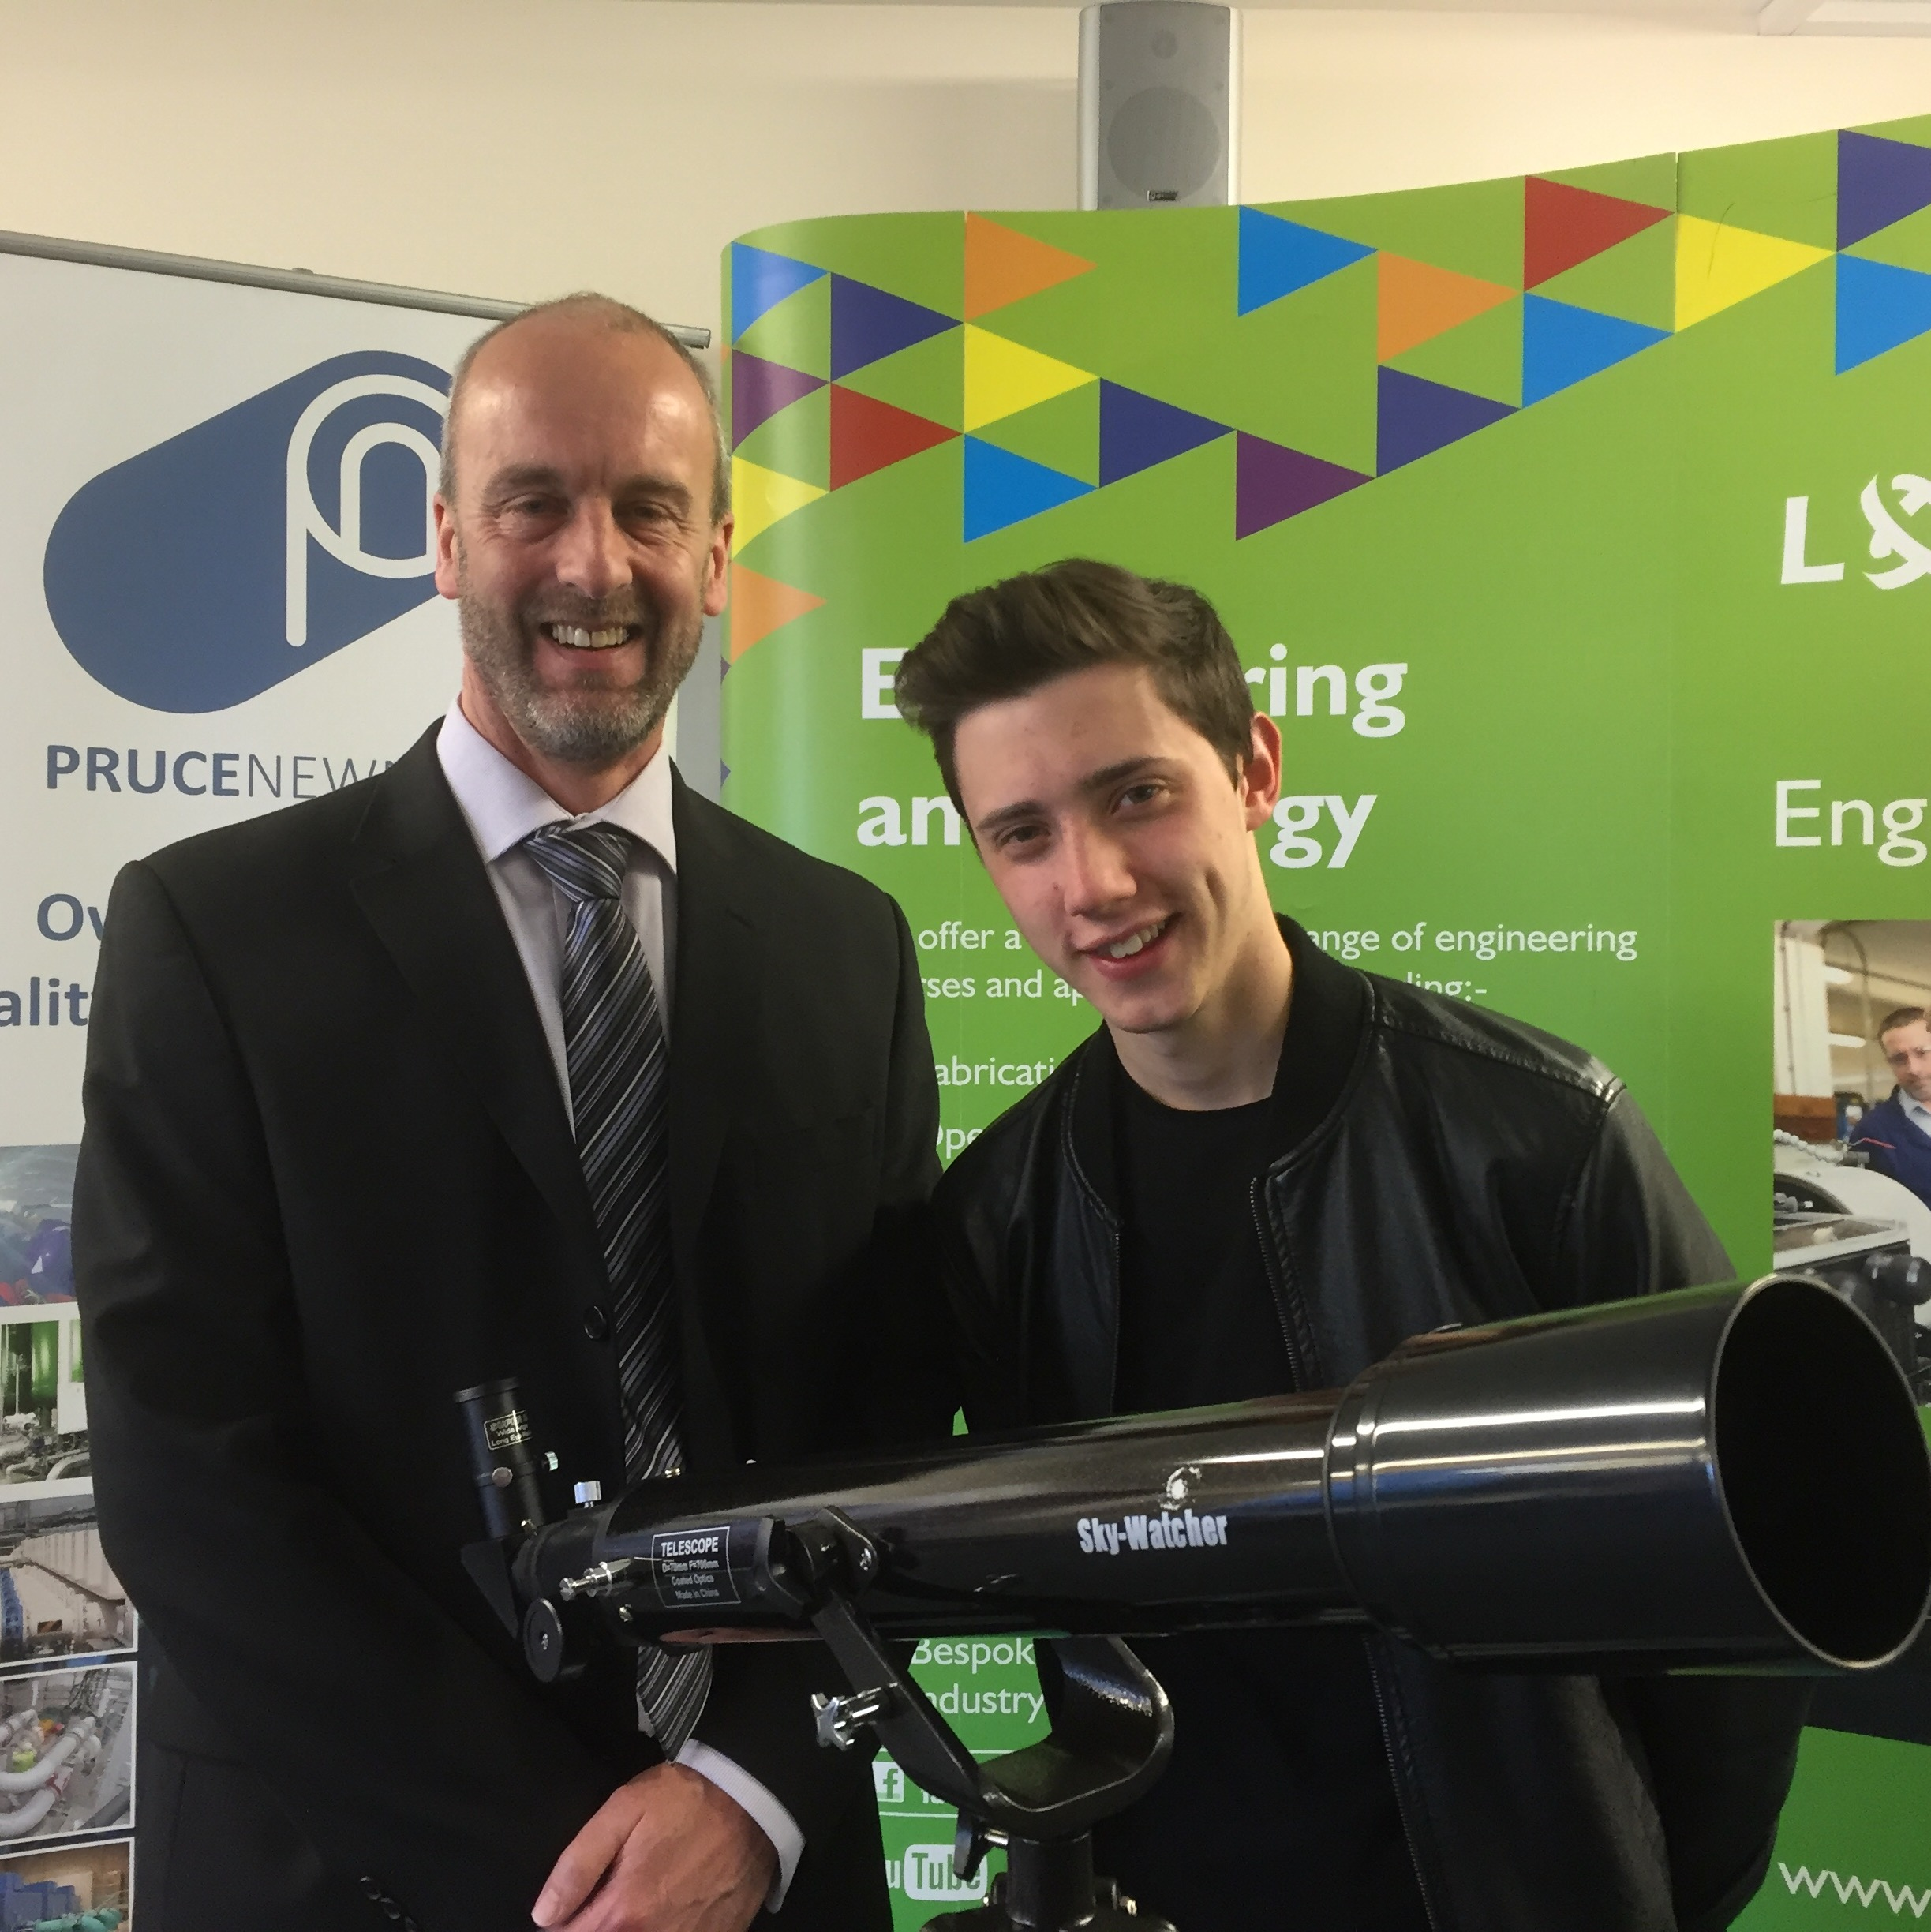 Tim Moorse (l) presents Max Harrison (r) with his prize